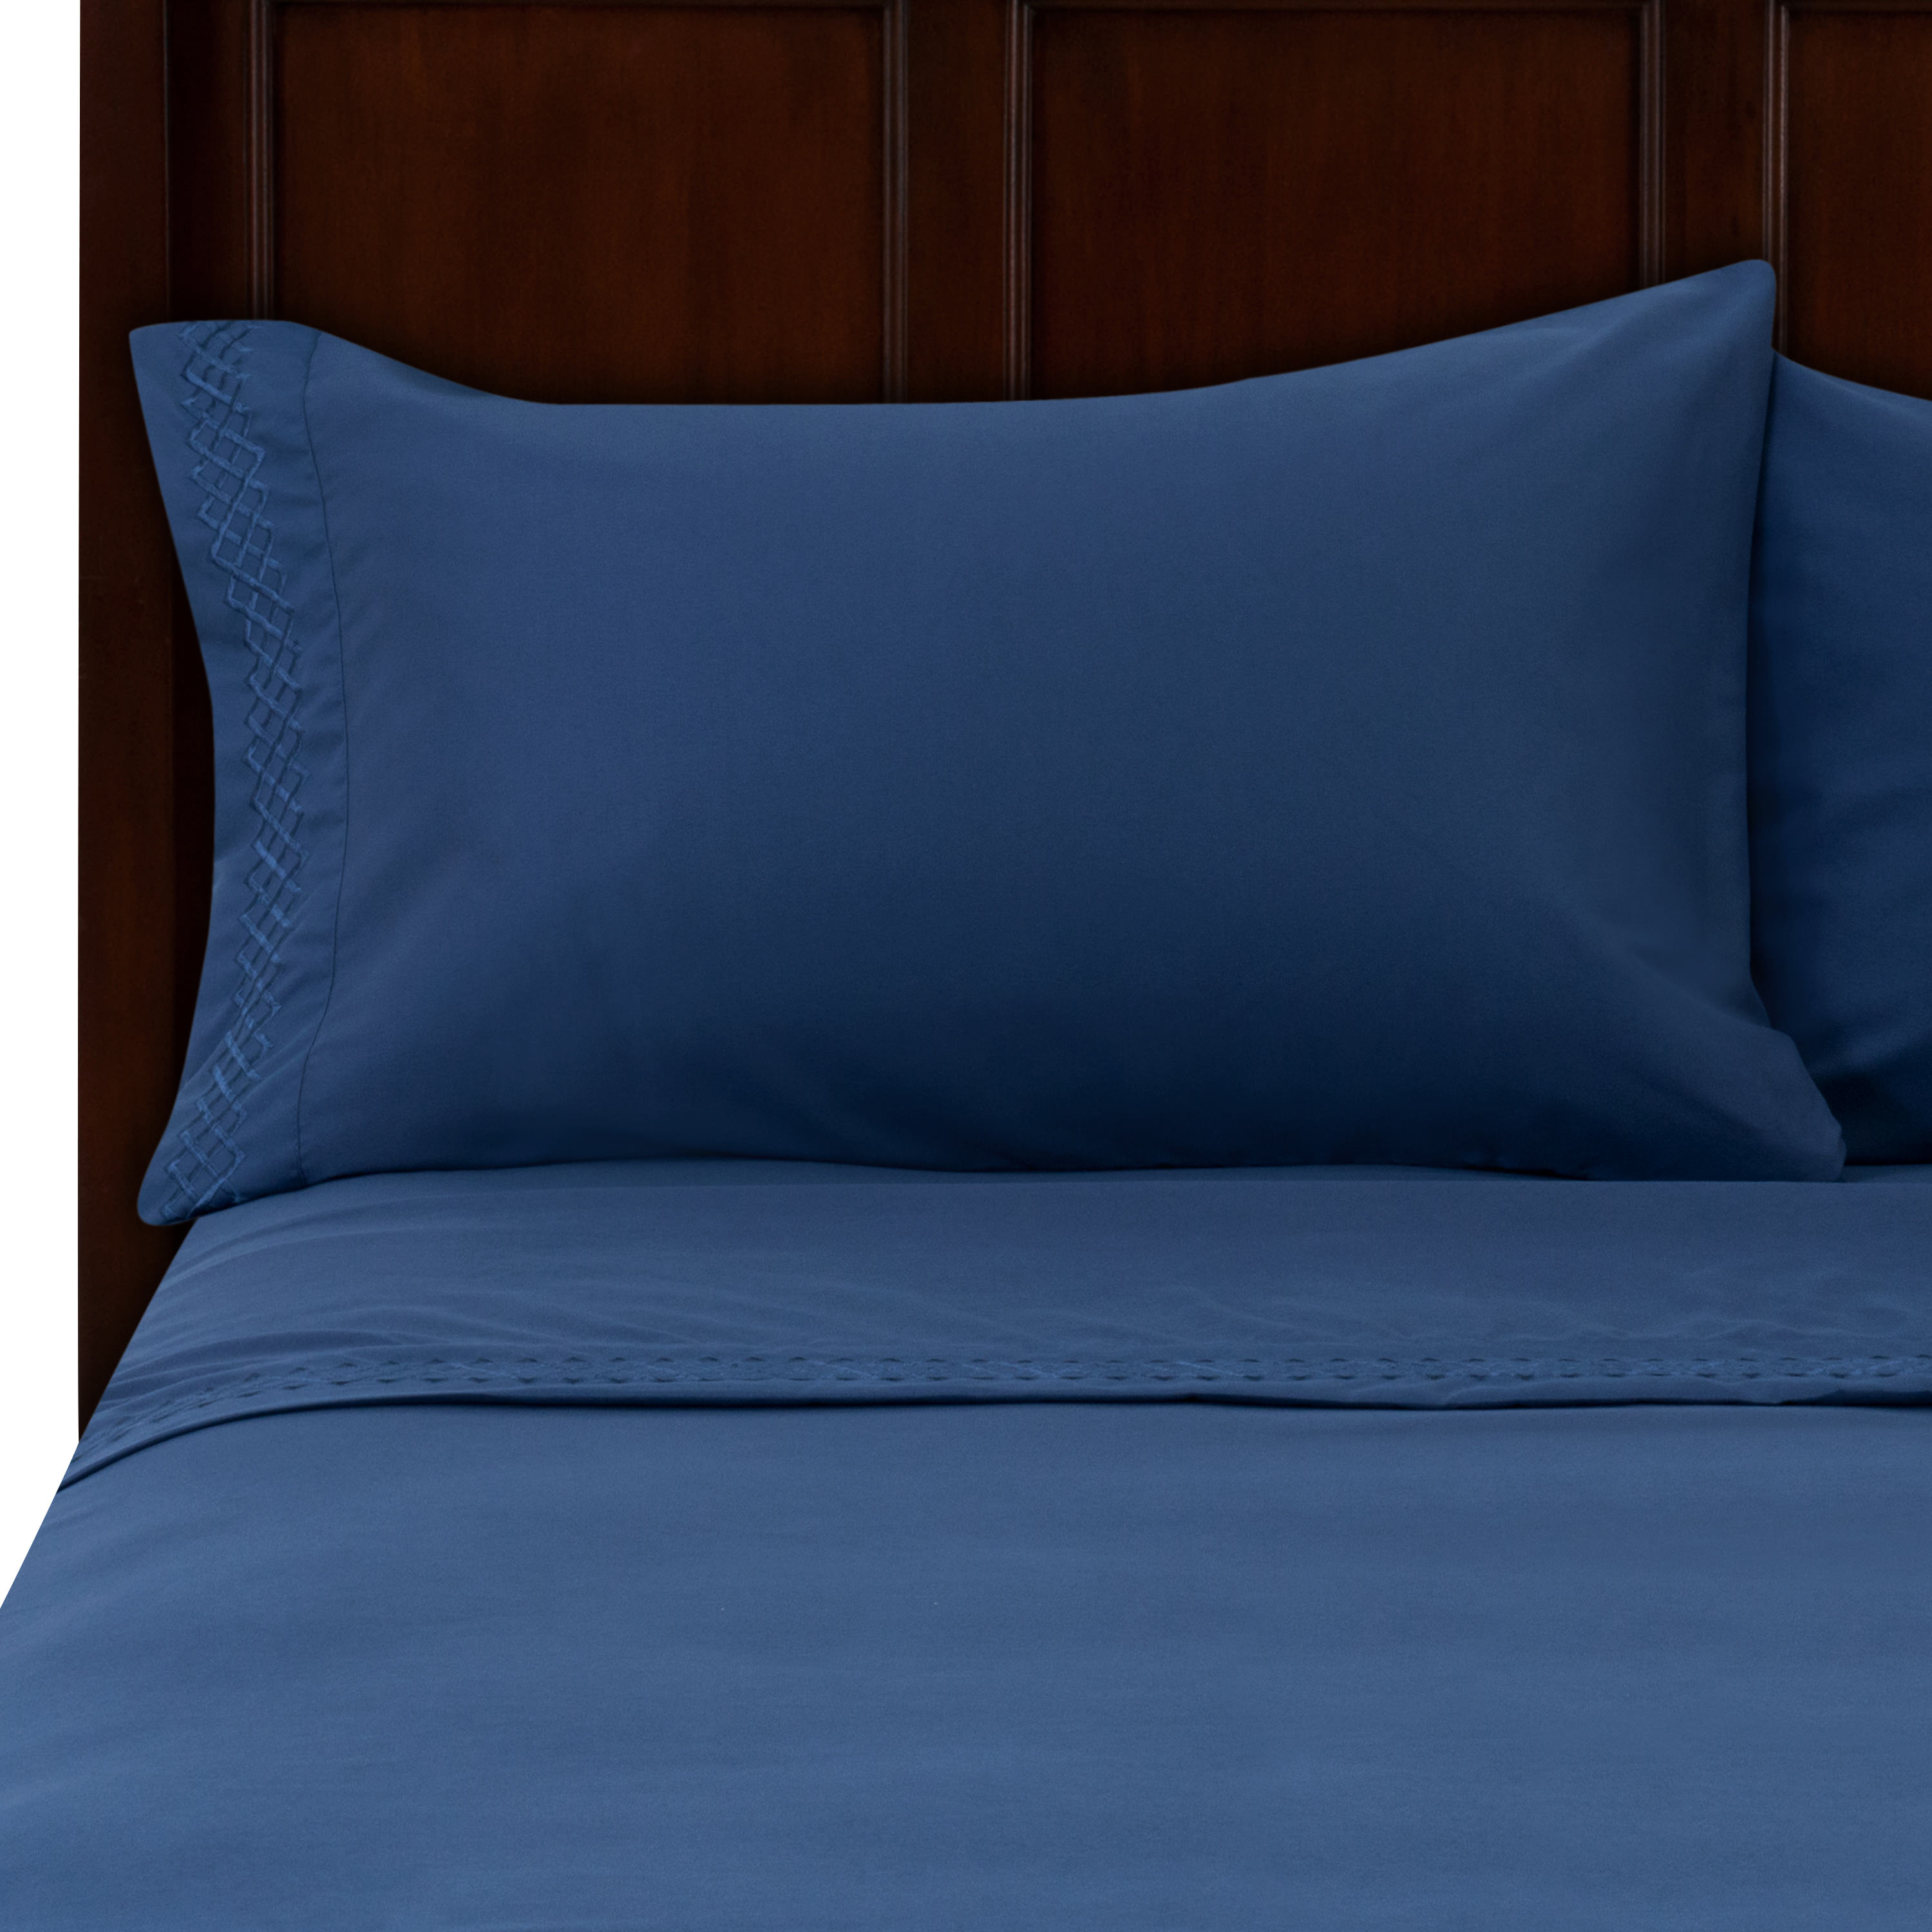 Better Homes and Gardens Luxury Embroidered Microfiber Sheet Set